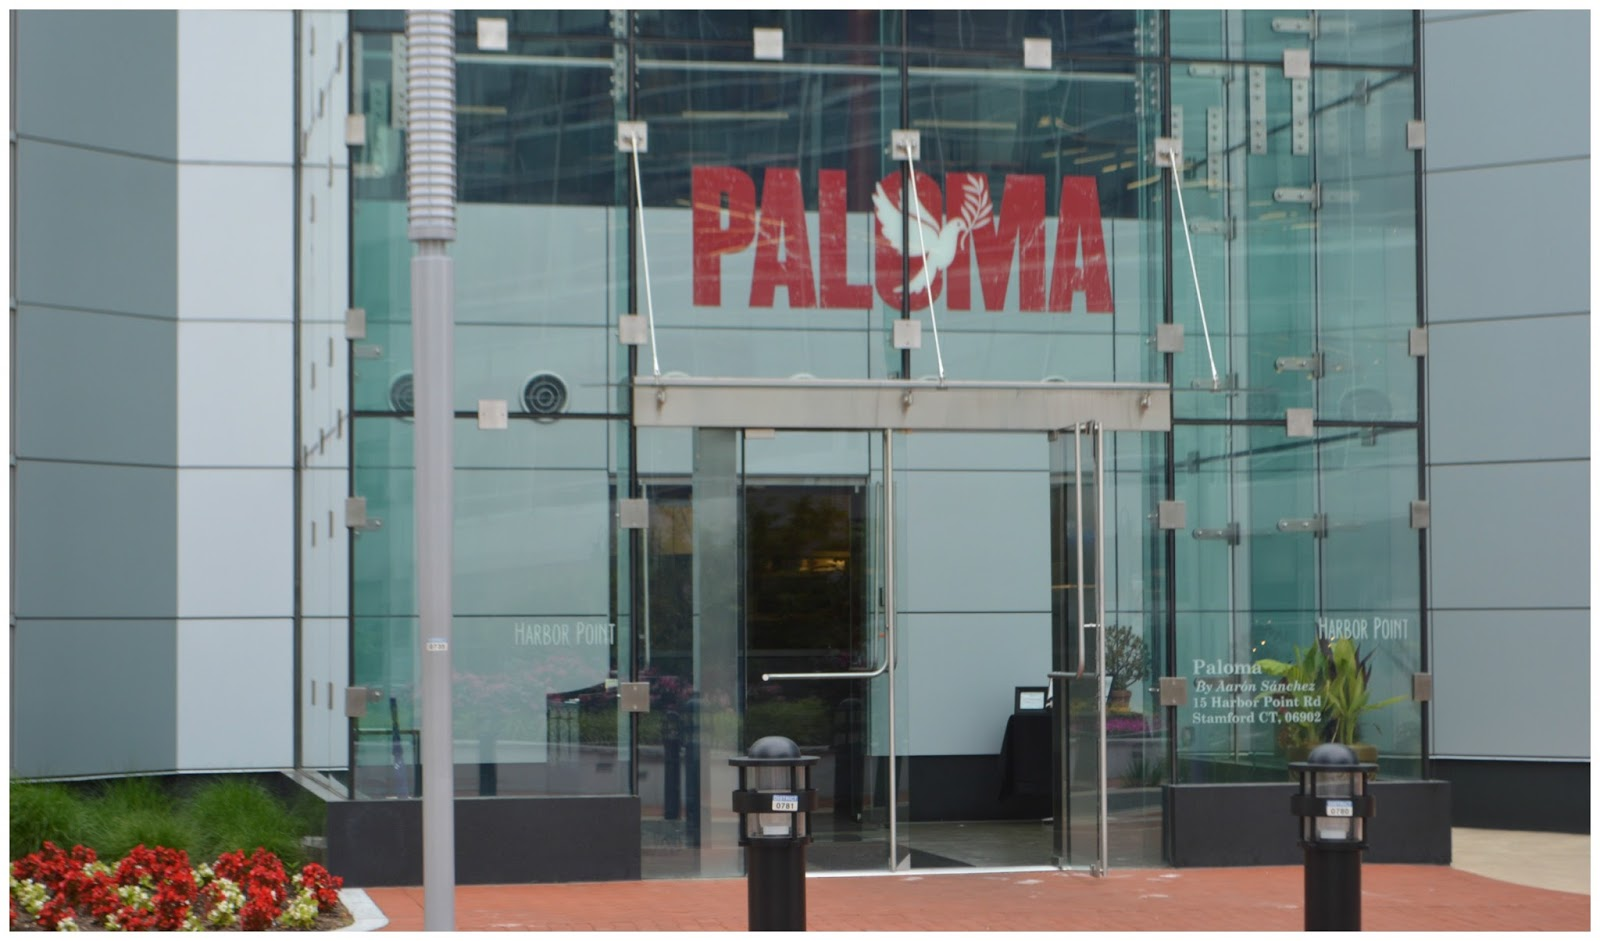 Paloma Grill In Harbor Point Stamford Ct